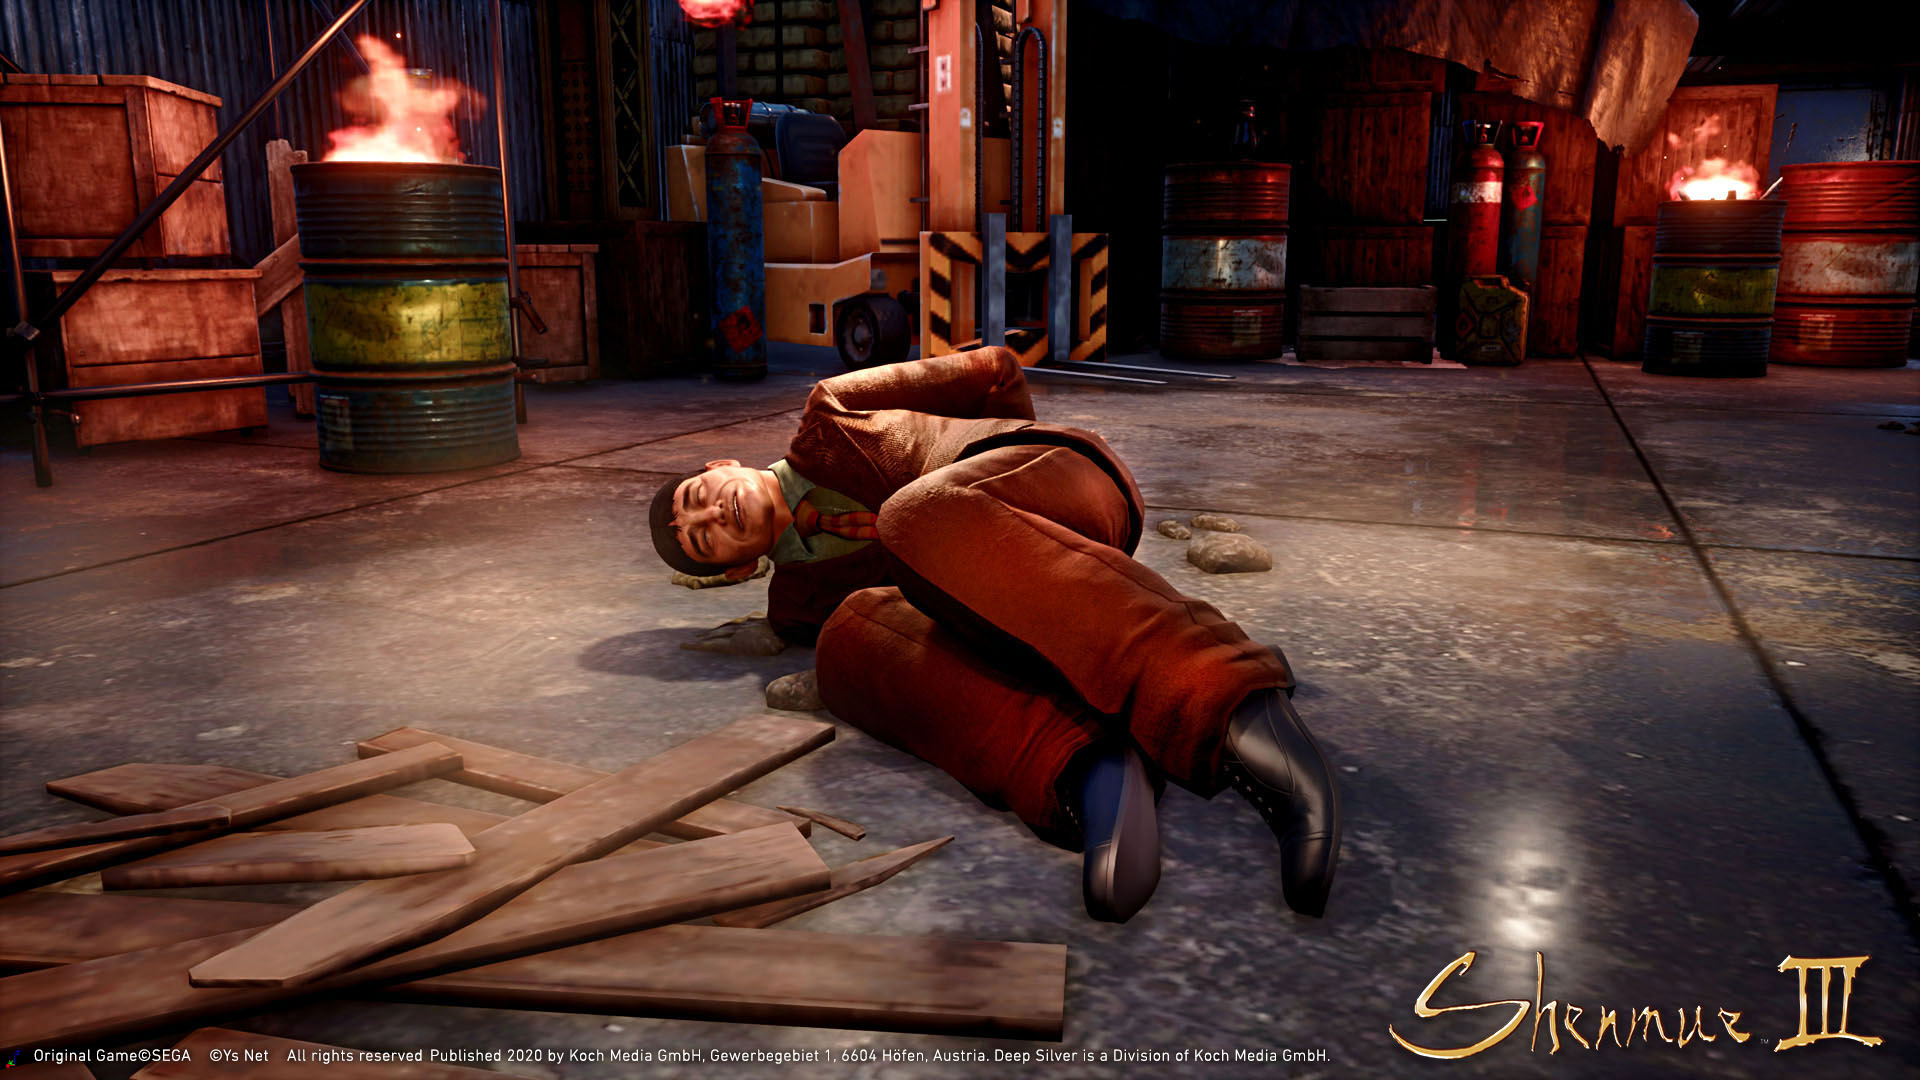 Shenmue III Story Quest Pack DLC